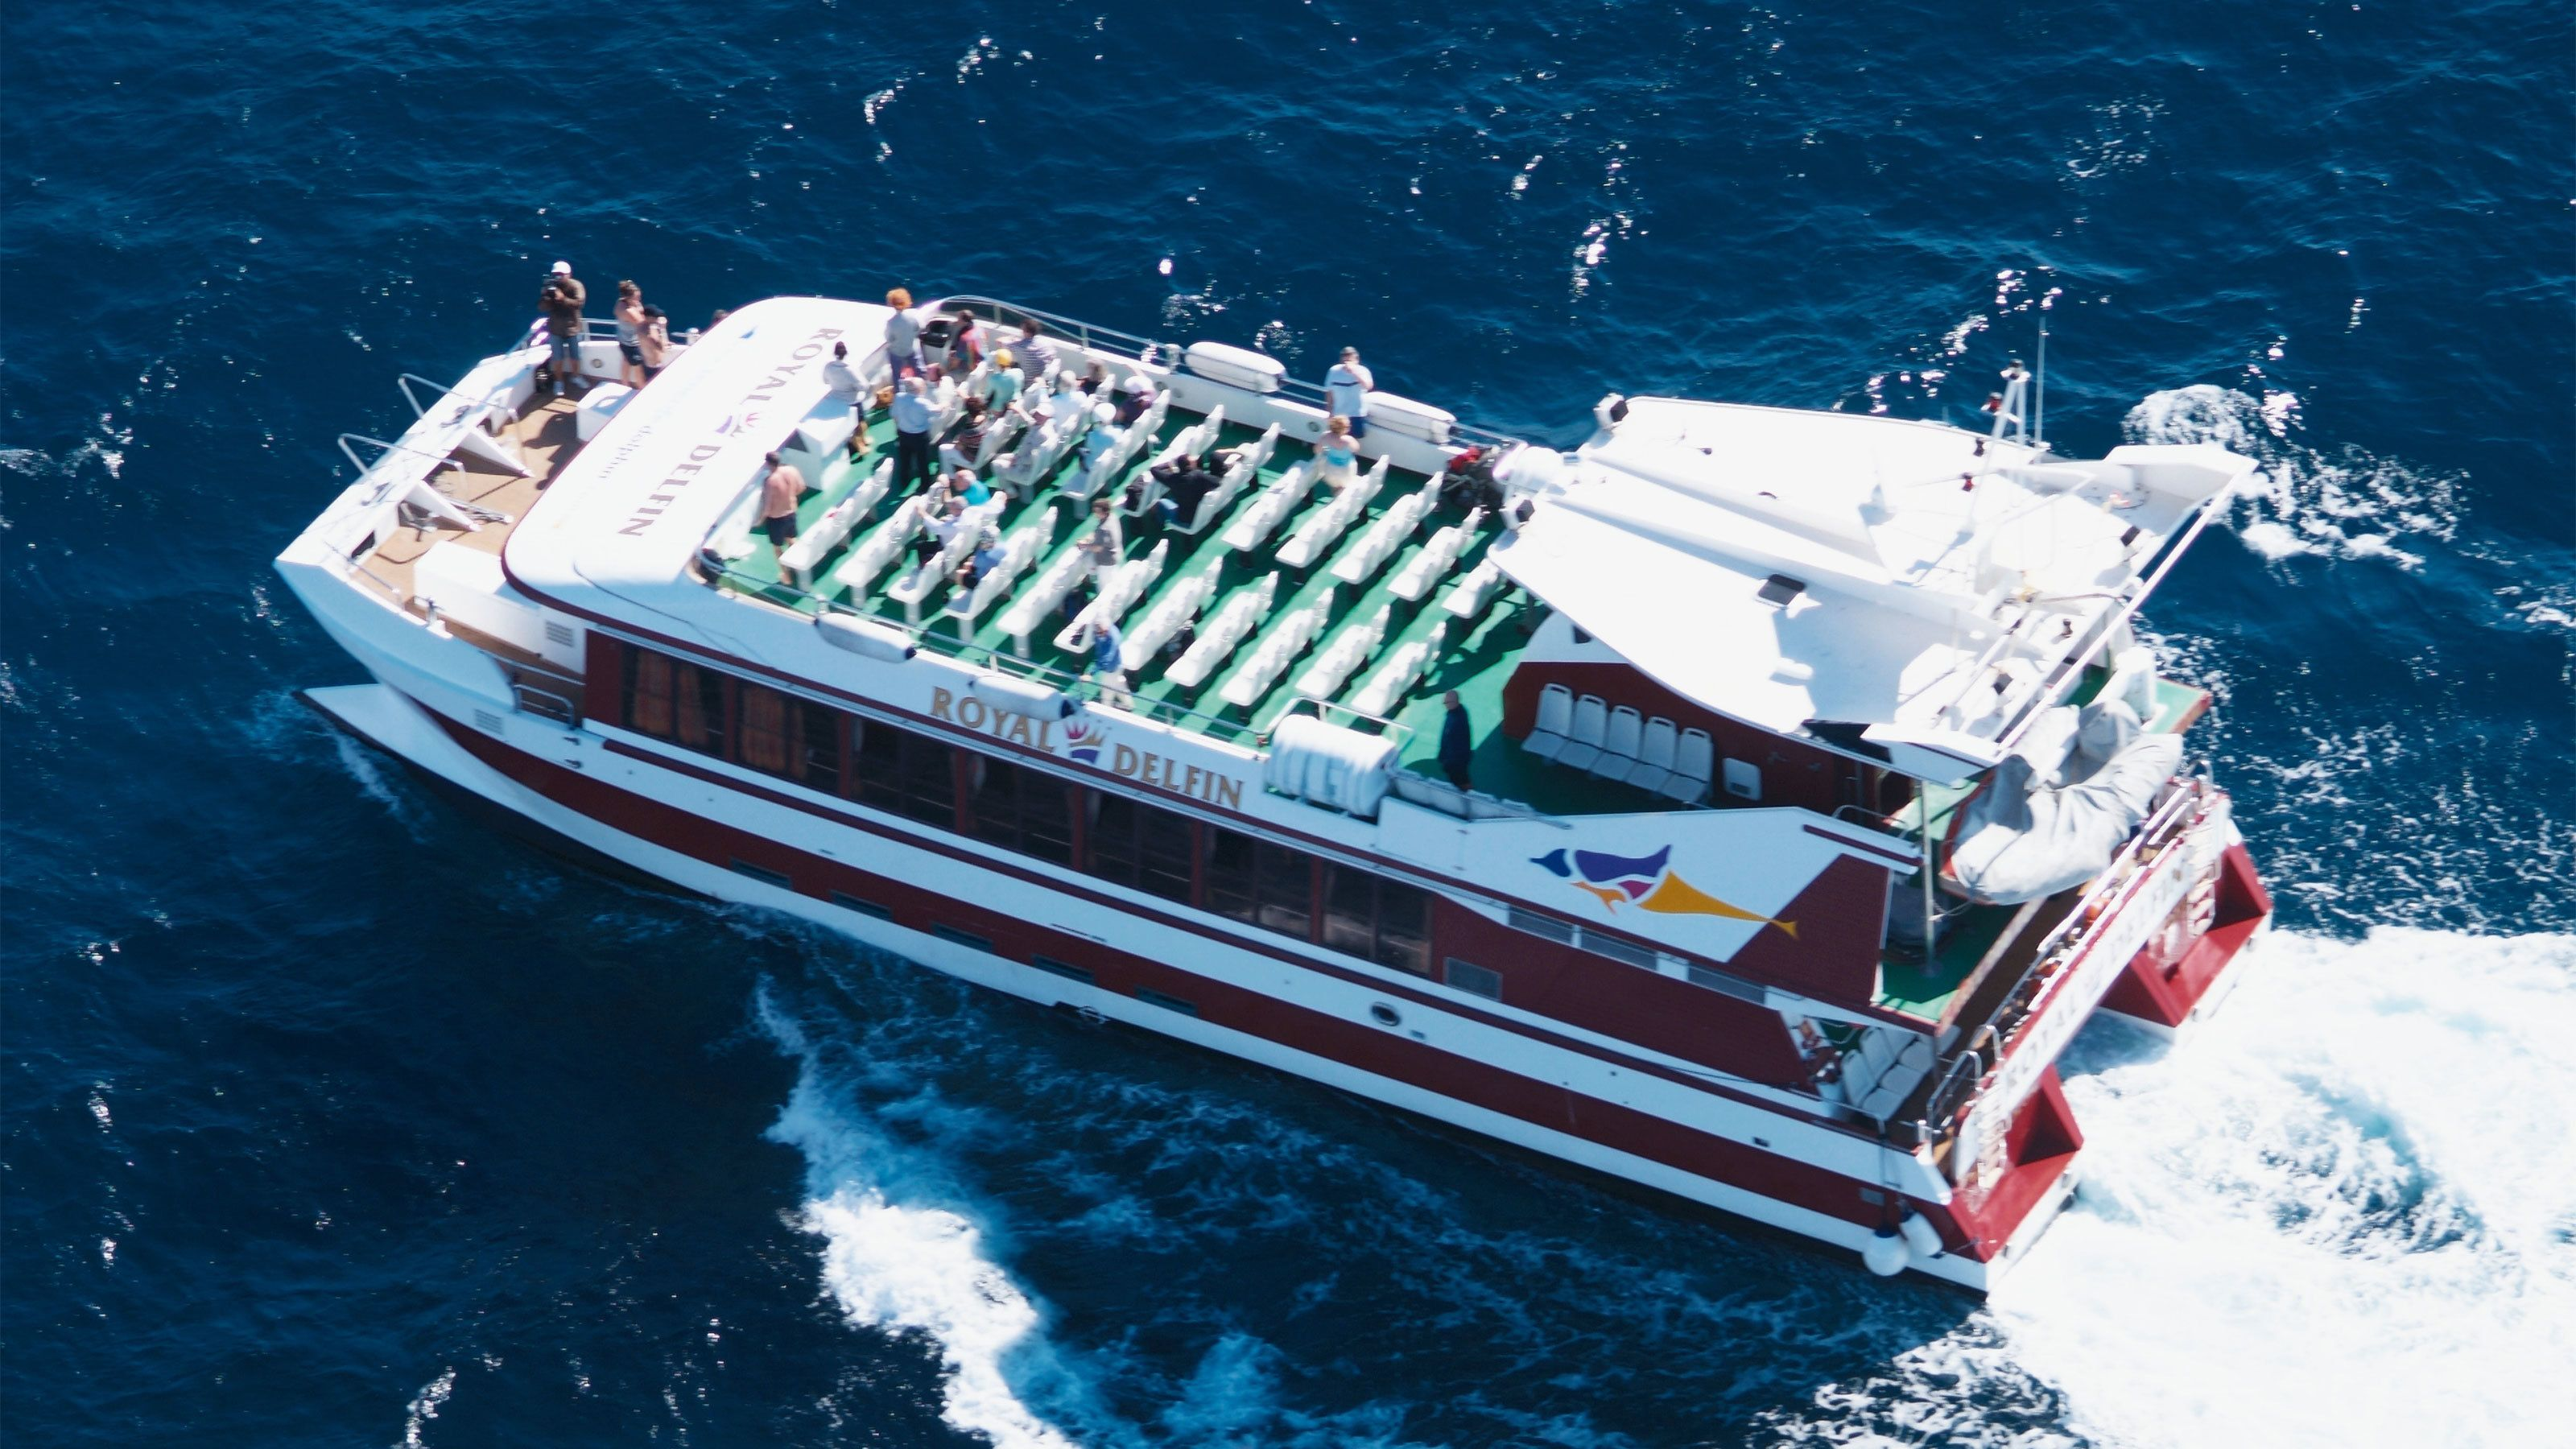 Enjoy the whale and dolphin watching experience from a double decker tour boat